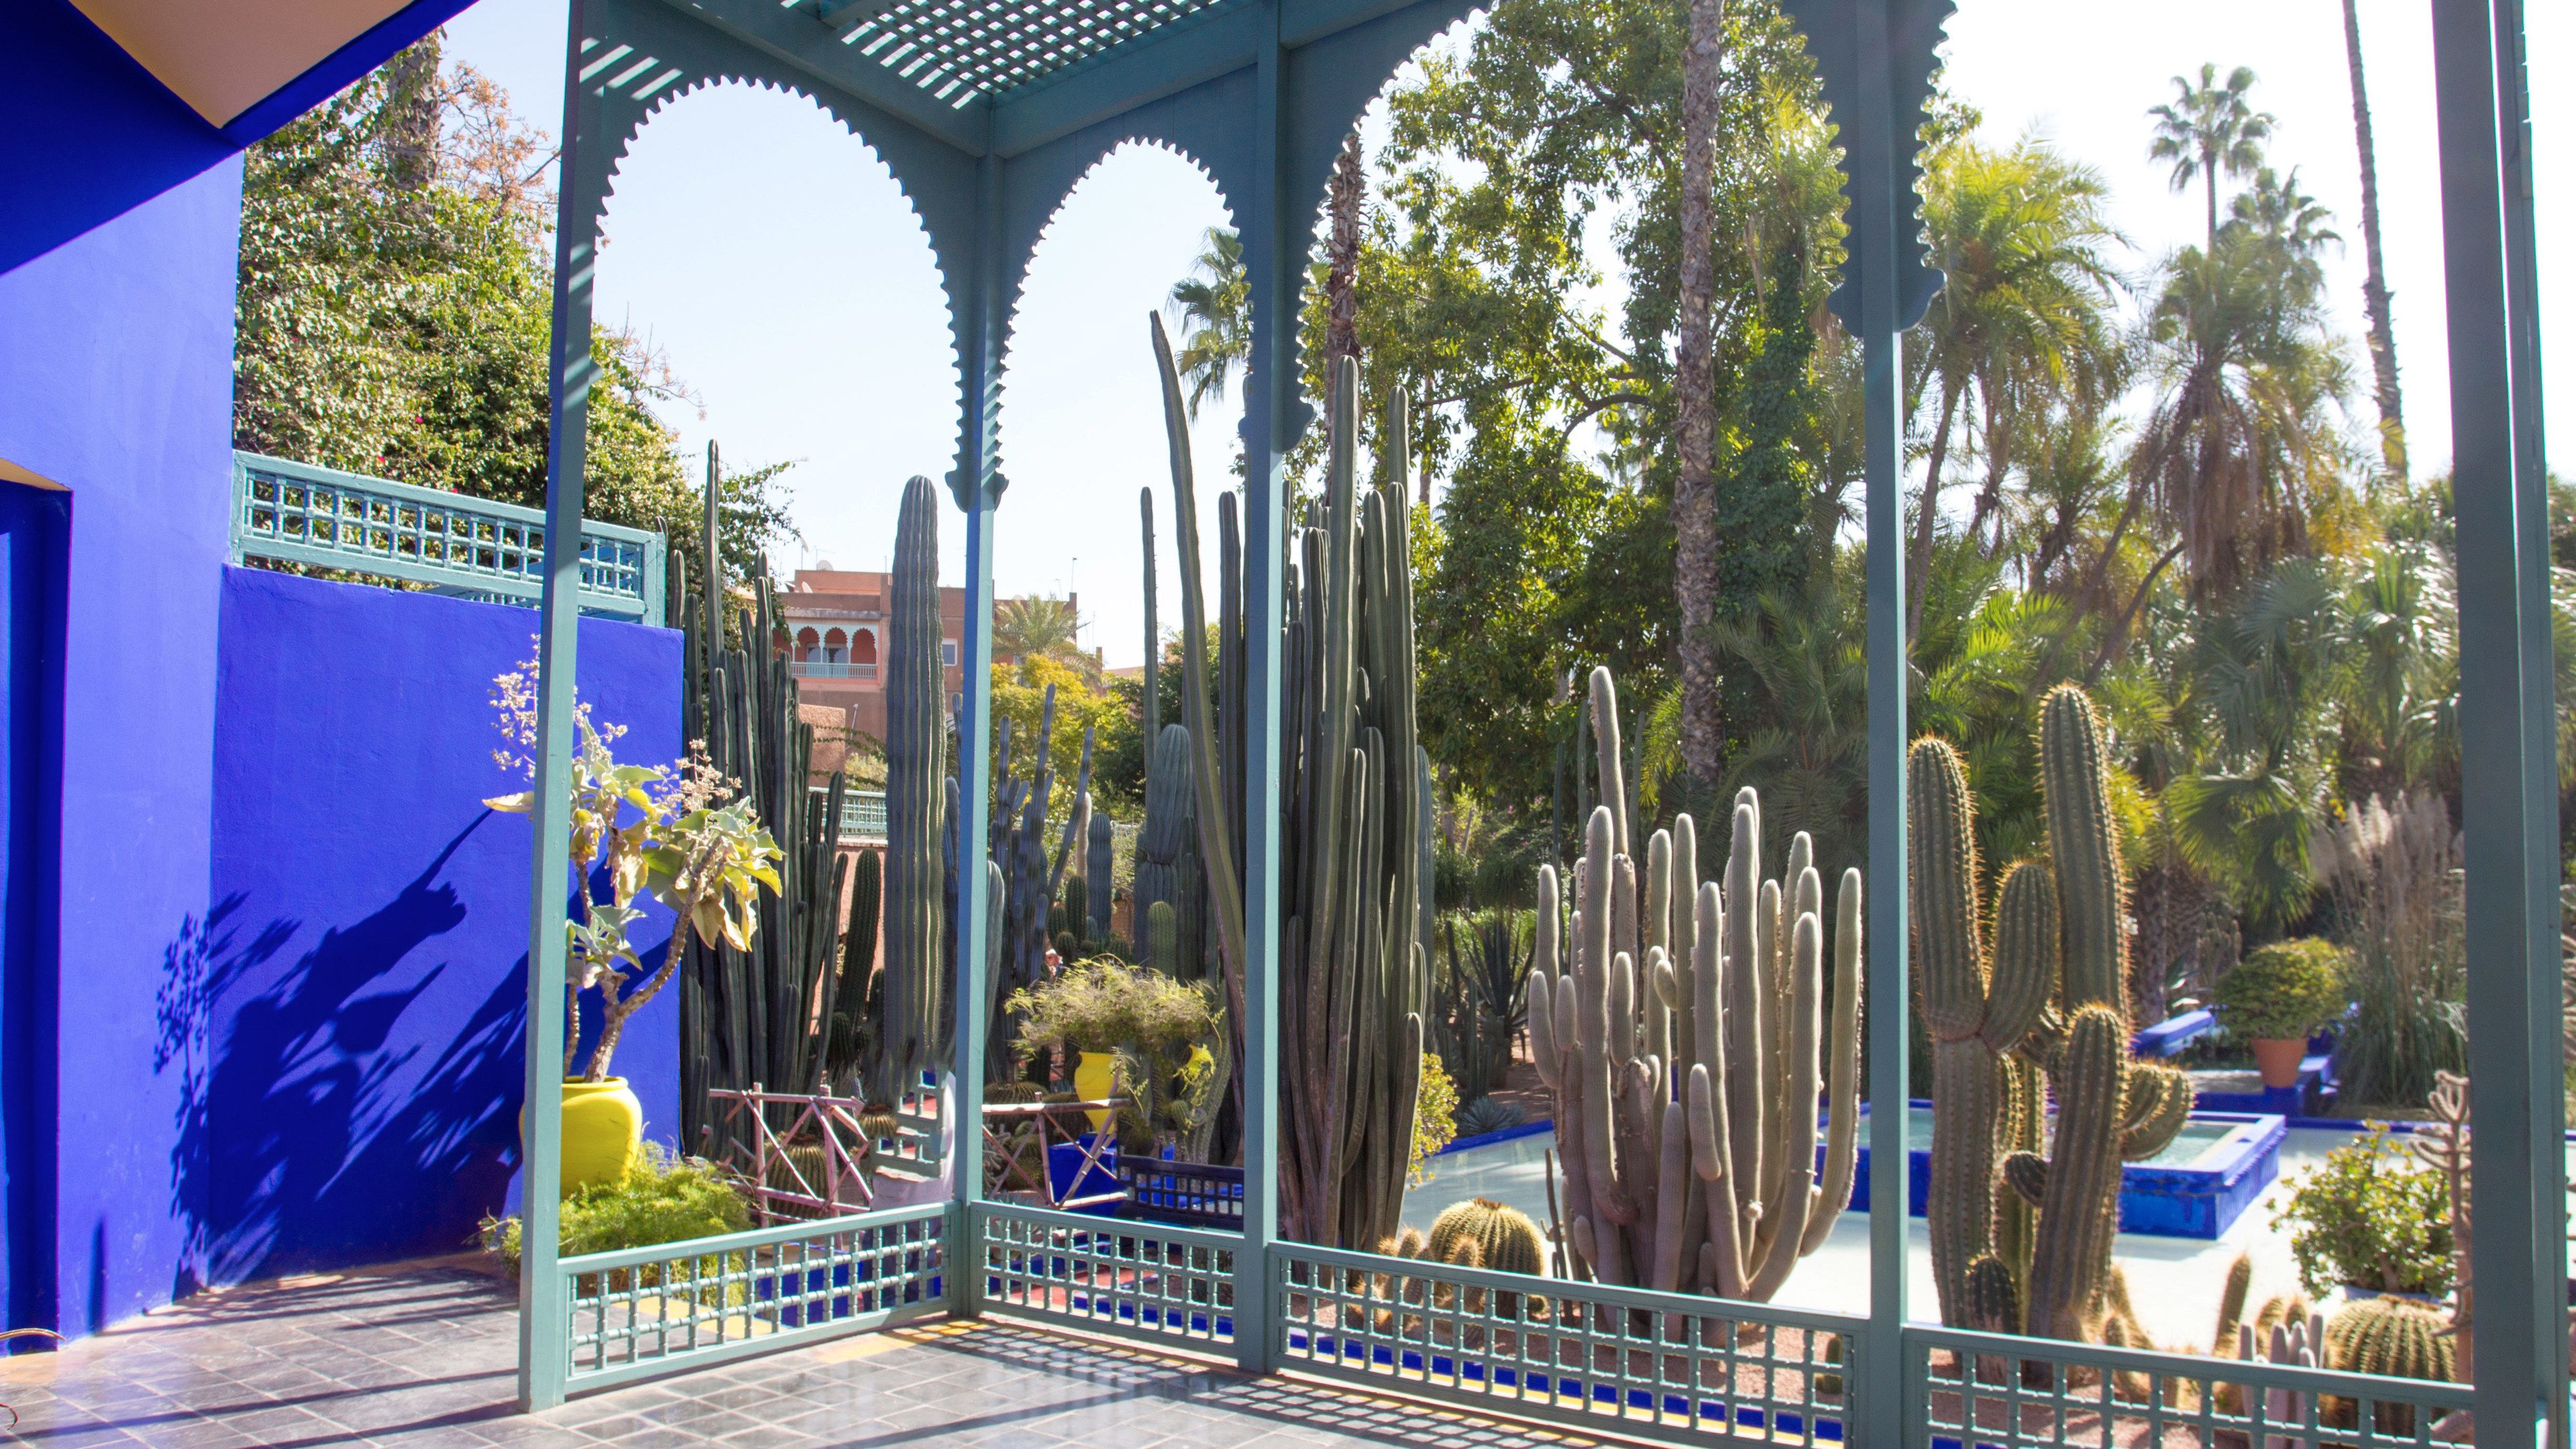 Vew inside the renowned Majorelle and Menara gardens in Marrakech